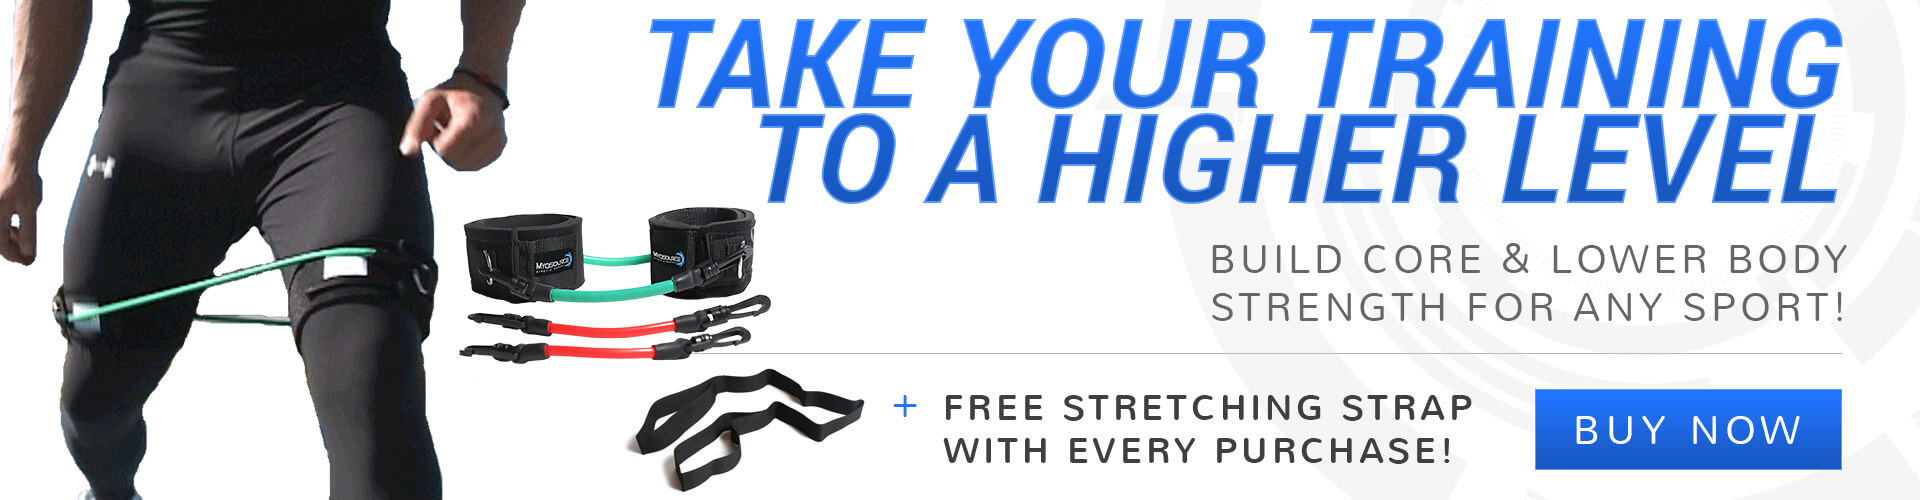 Take your athletic training to a higher level with Myosource Kinetic Bands. Get a free stretching strap with every purchase!